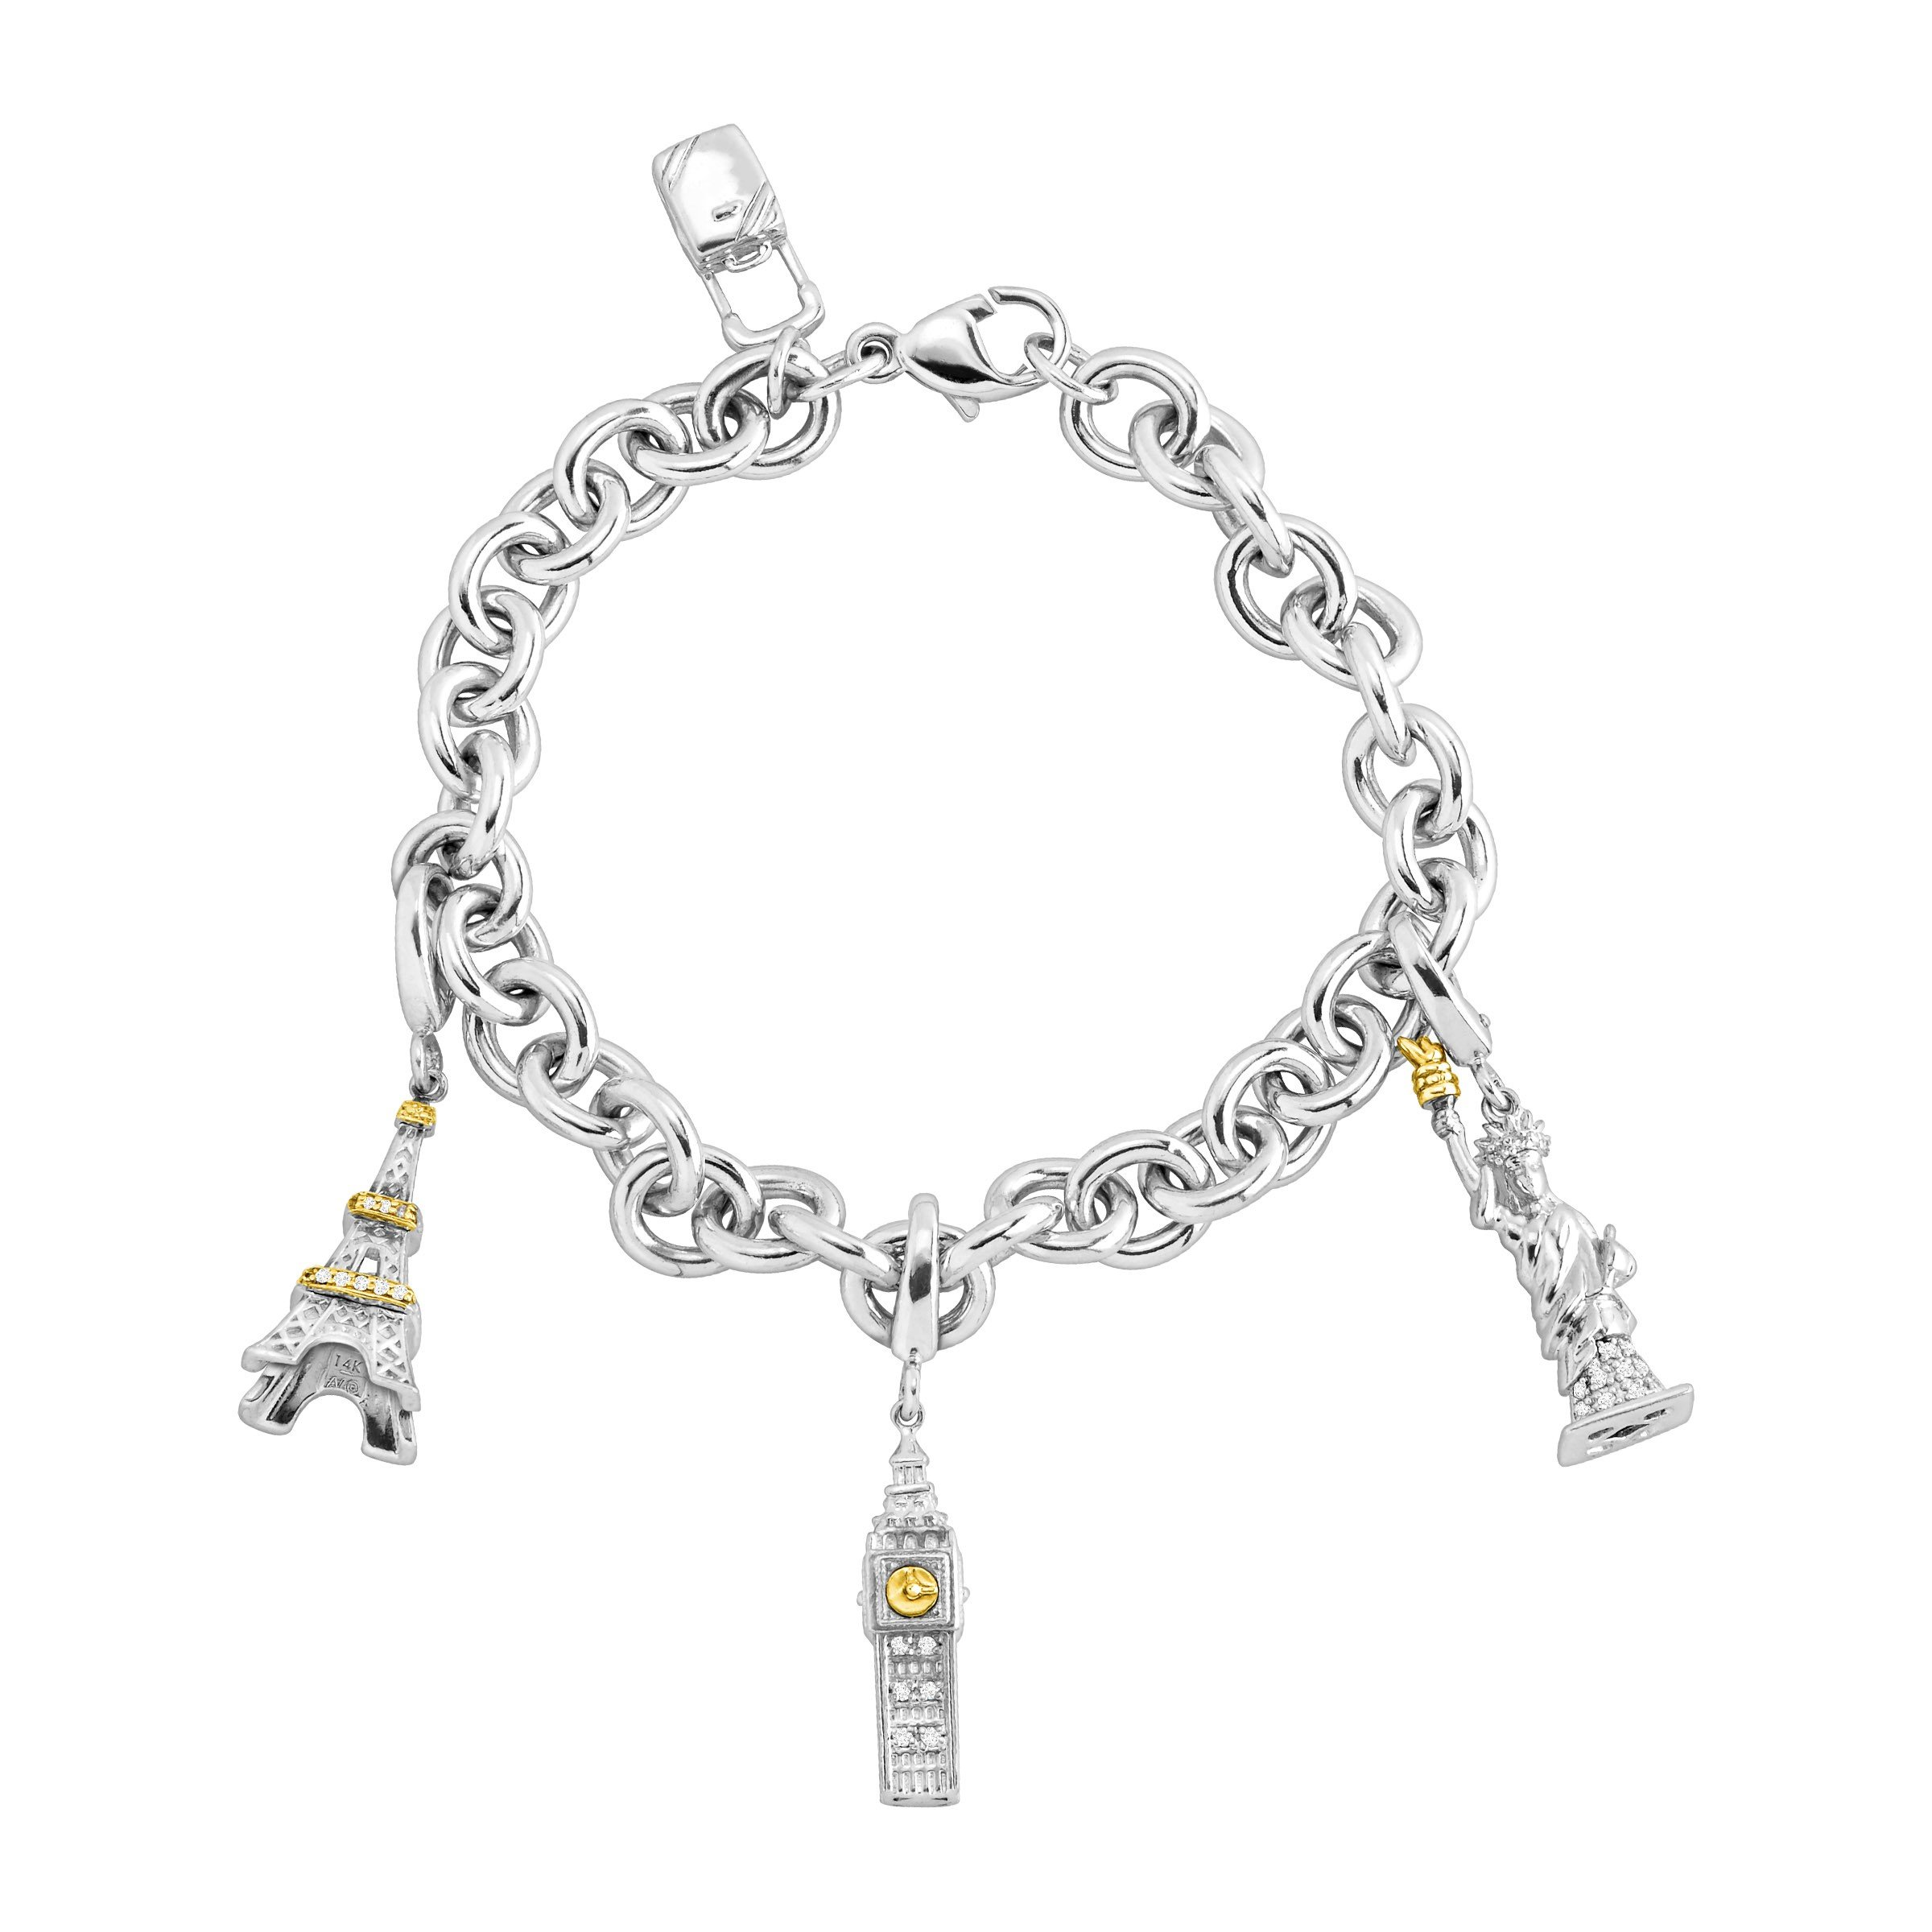 Travel Charm Bracelet with 1/8 ct Diamonds in Sterling Silver & 14K Gold by Finecraft